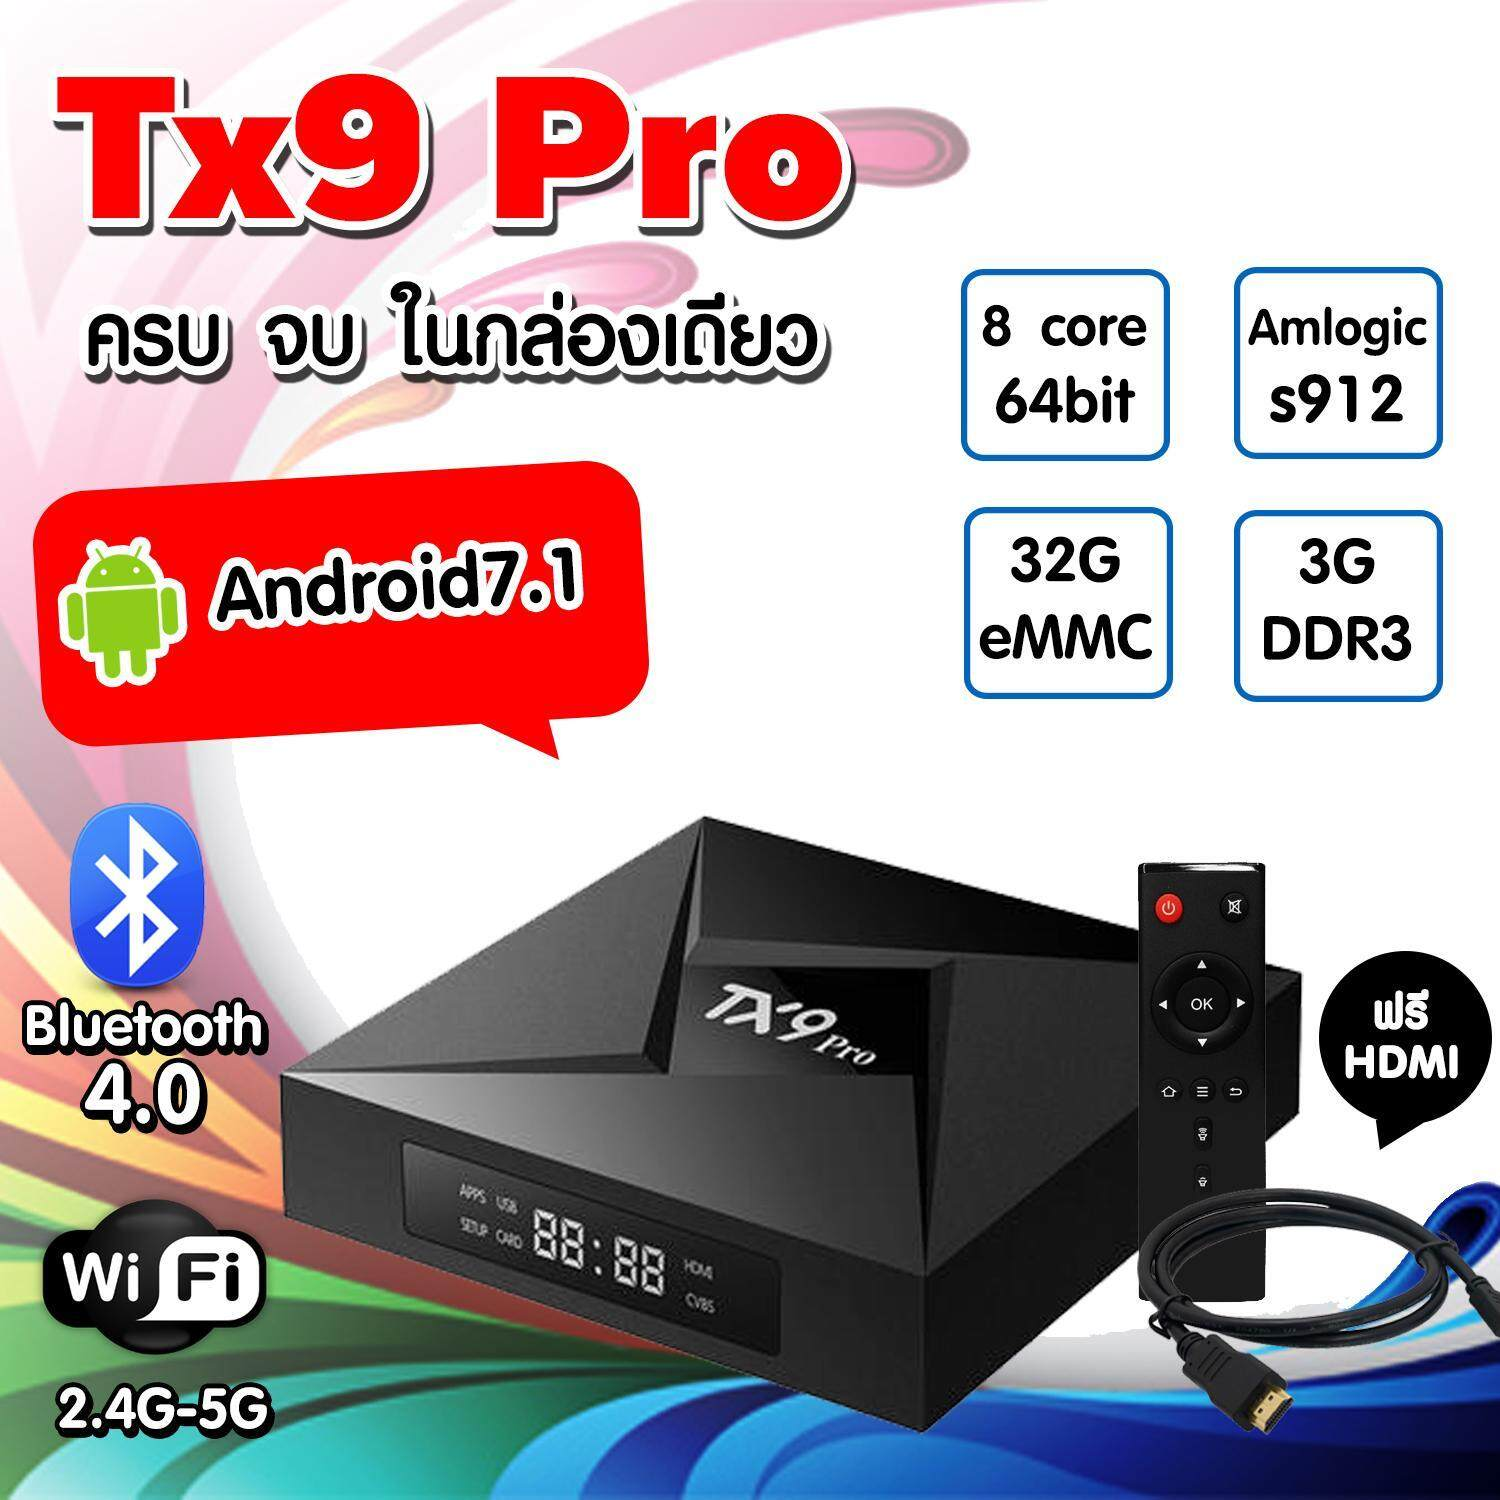 พะเยา เร็วแรงทะลุจอ  แรม 3GB   รอม 32GB   CPU 8 Core   Amlogic S912 octa core Android 7.1 tv box bulit in 2.4G+5G+   Bluetooth   4K player